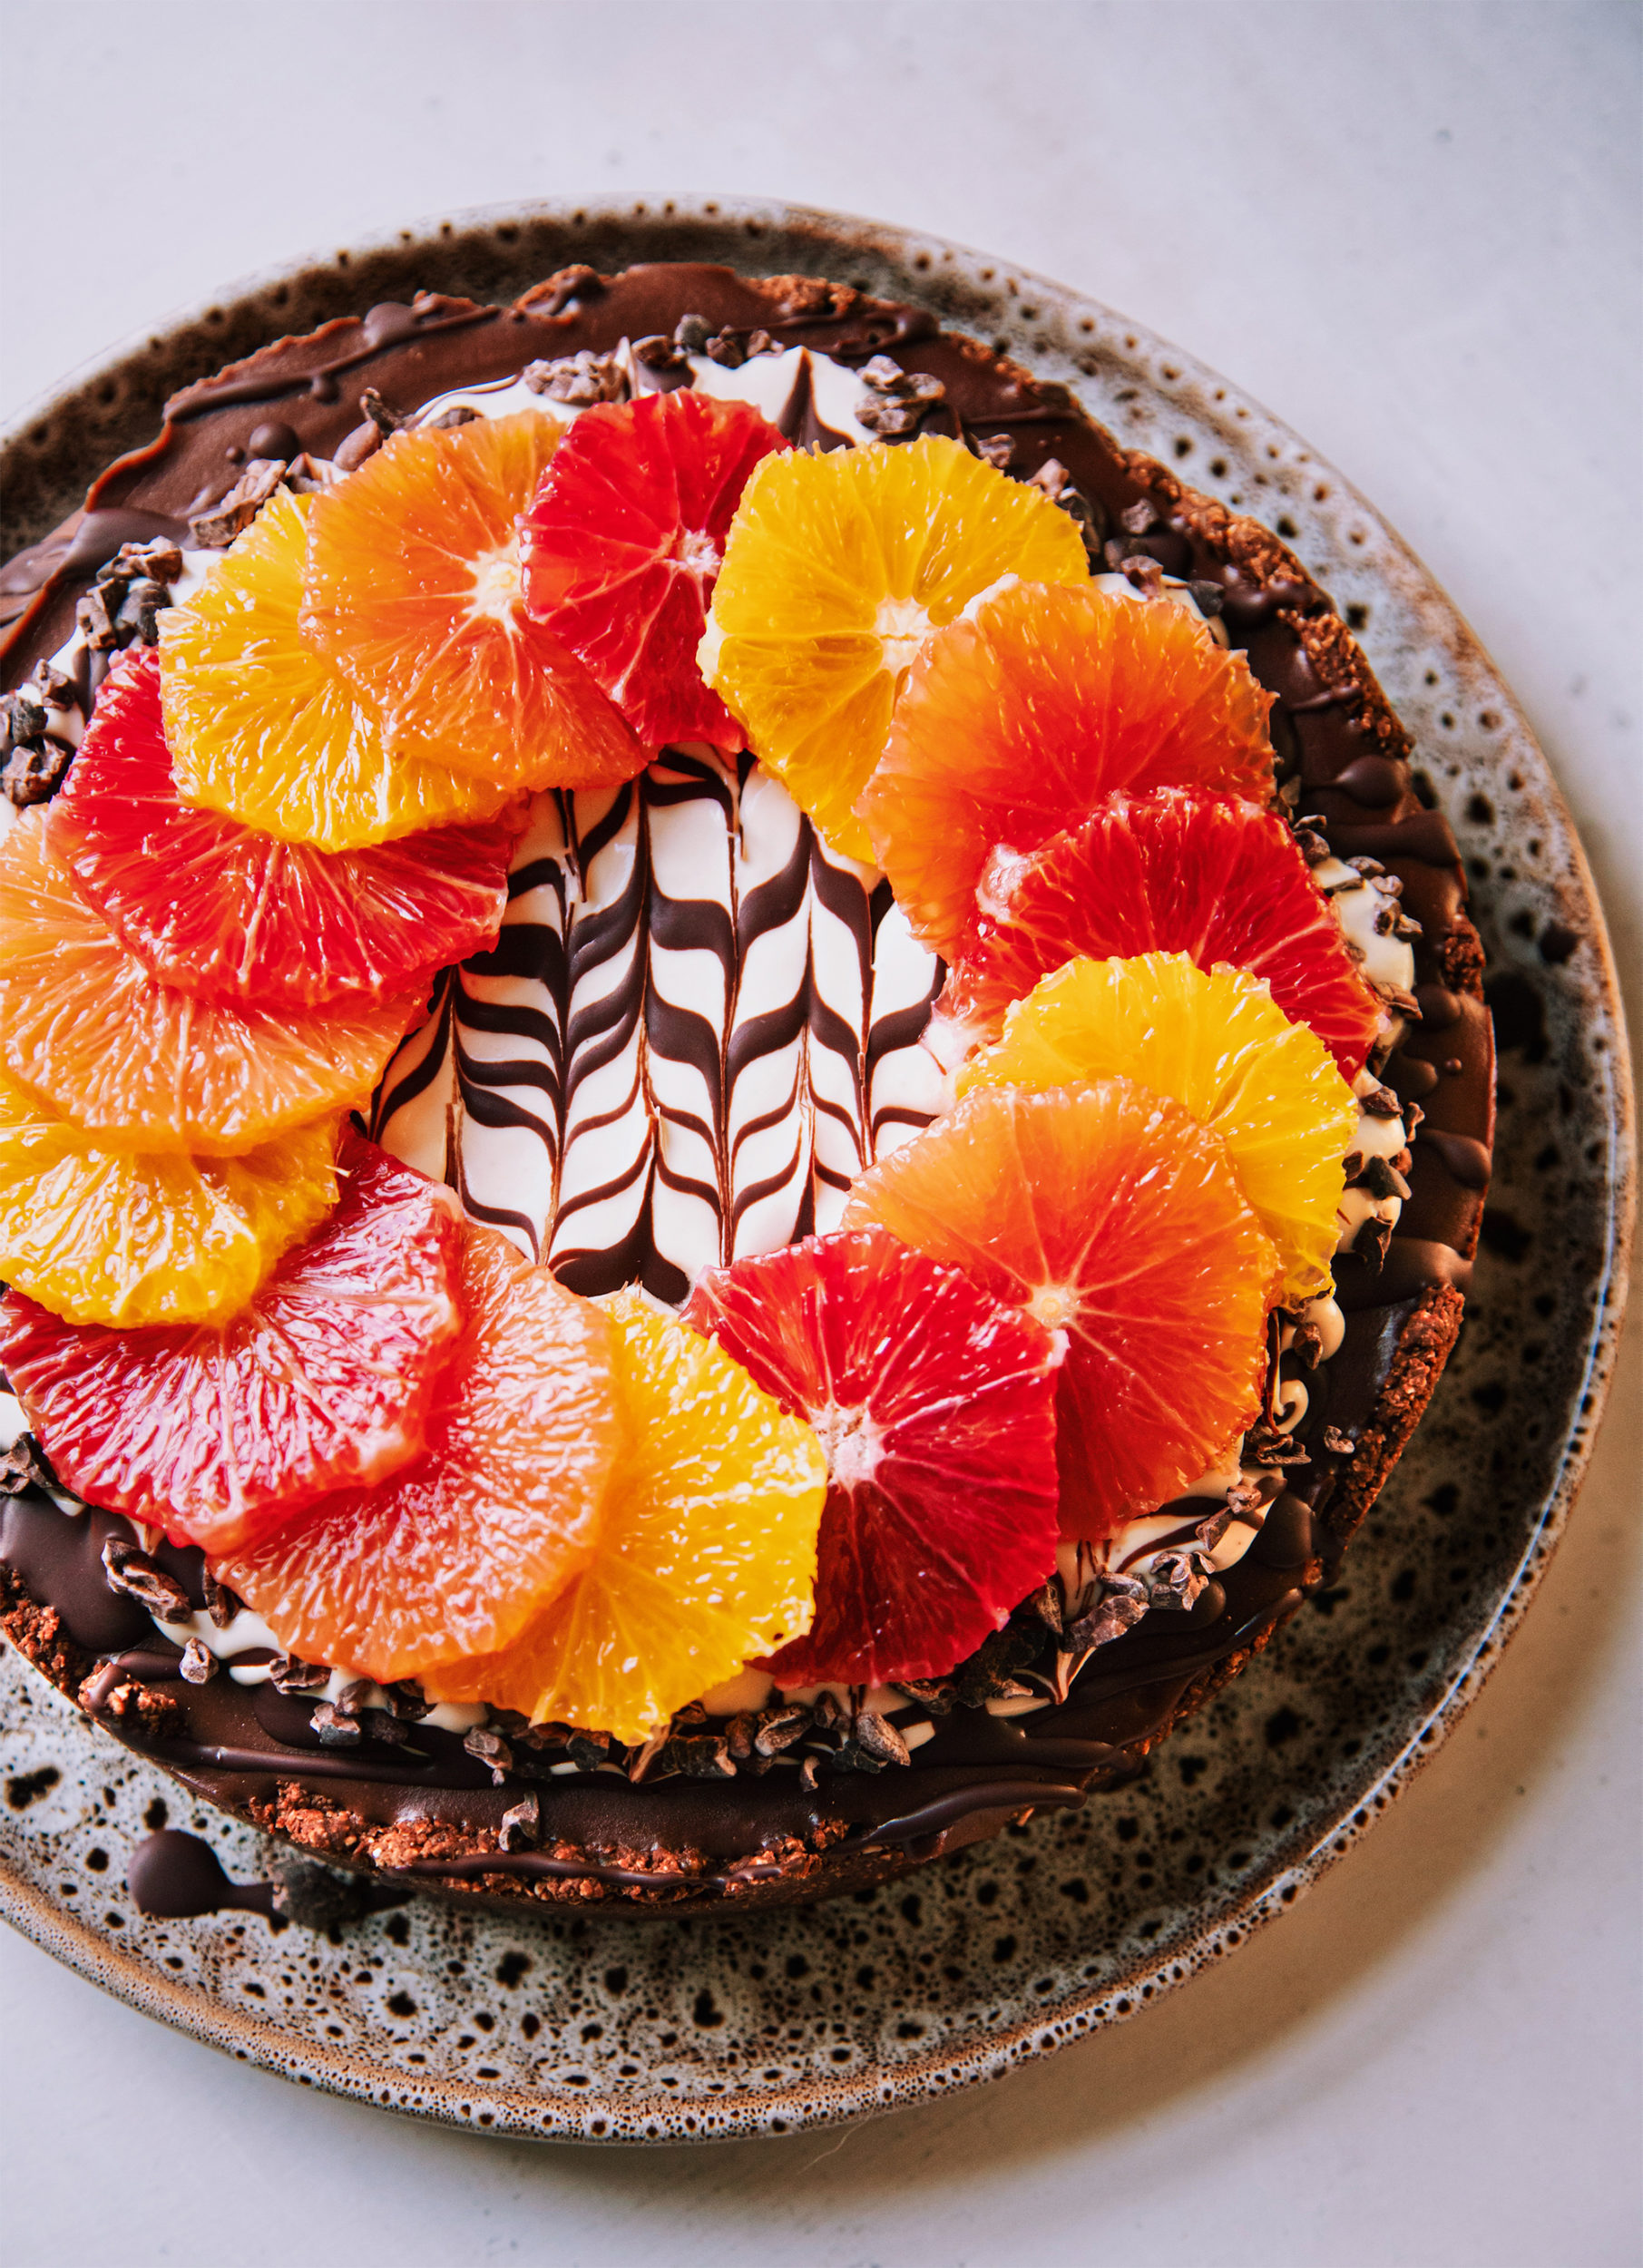 An overhead shot of a vegan chocolate orange cheesecake on a white background. The top of the cheesecake has a wreath or different coloured orange slices on top of a white cashew cream and melted chocolate marble design. To the side is a pink linen napkin, a paring knife and a vintage silver serving utensil. Part of a roundup of vegan holiday recipes.